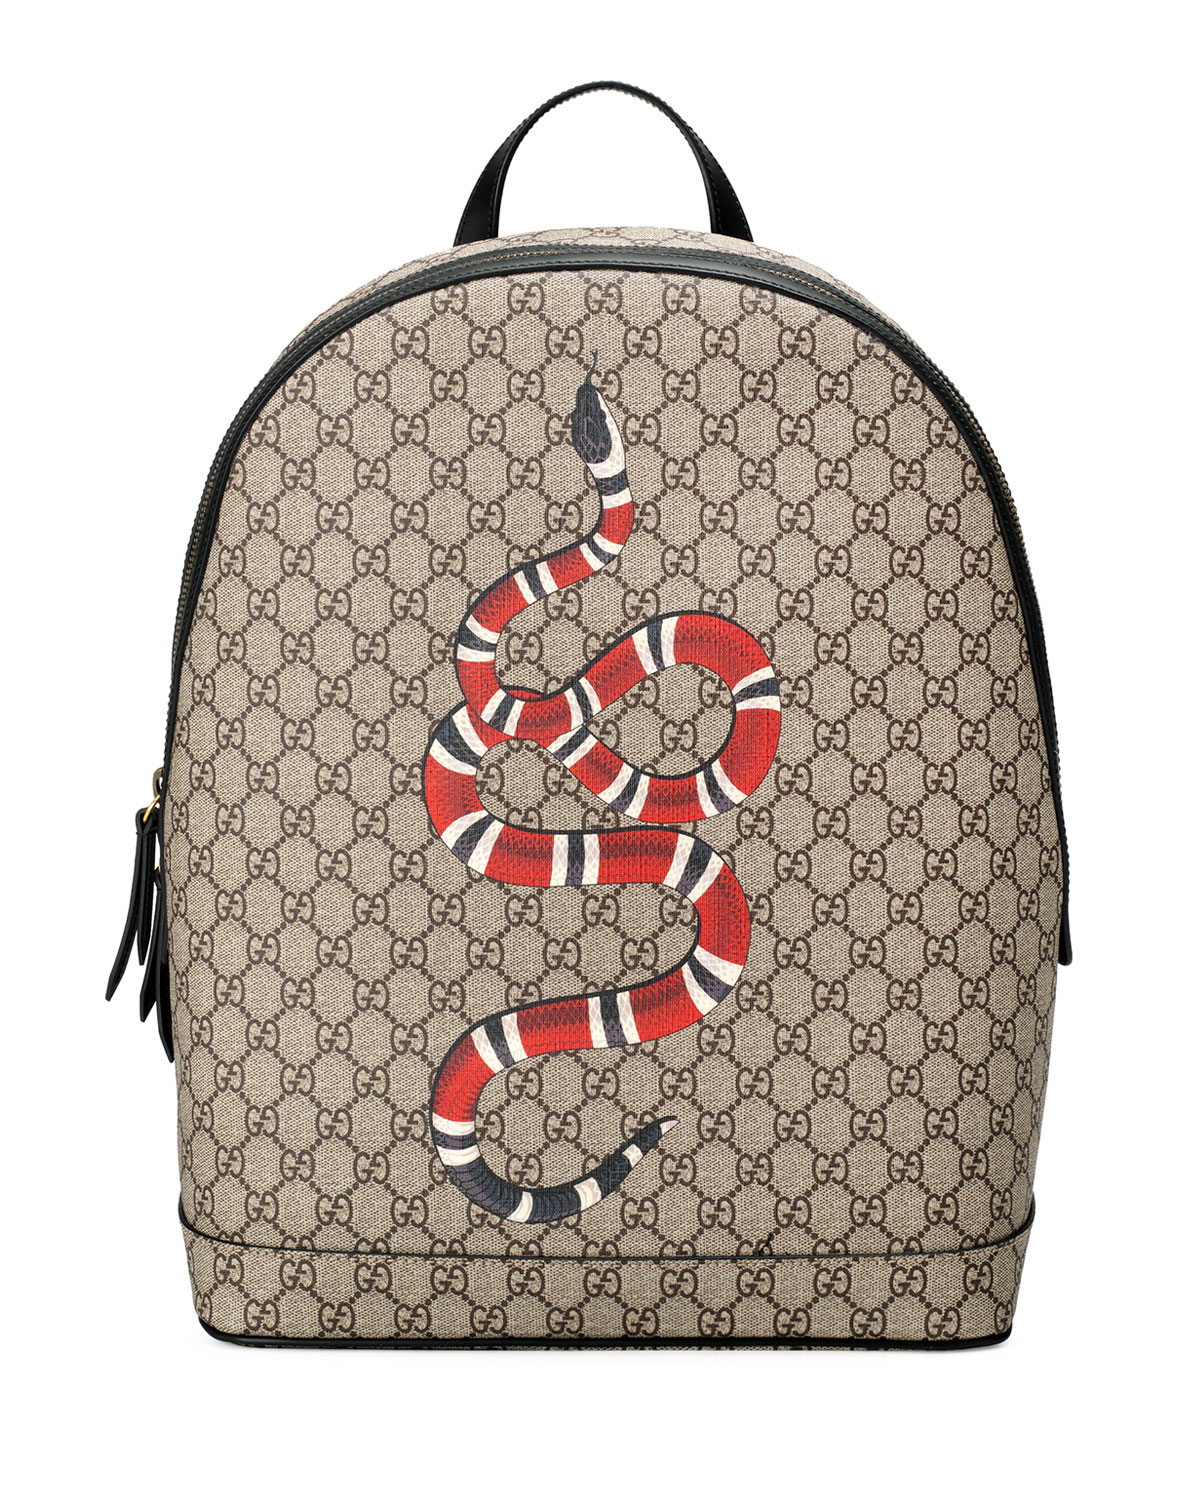 4fc2be643 Gucci Snake-Print GG Supreme Backpack | Neiman Marcus